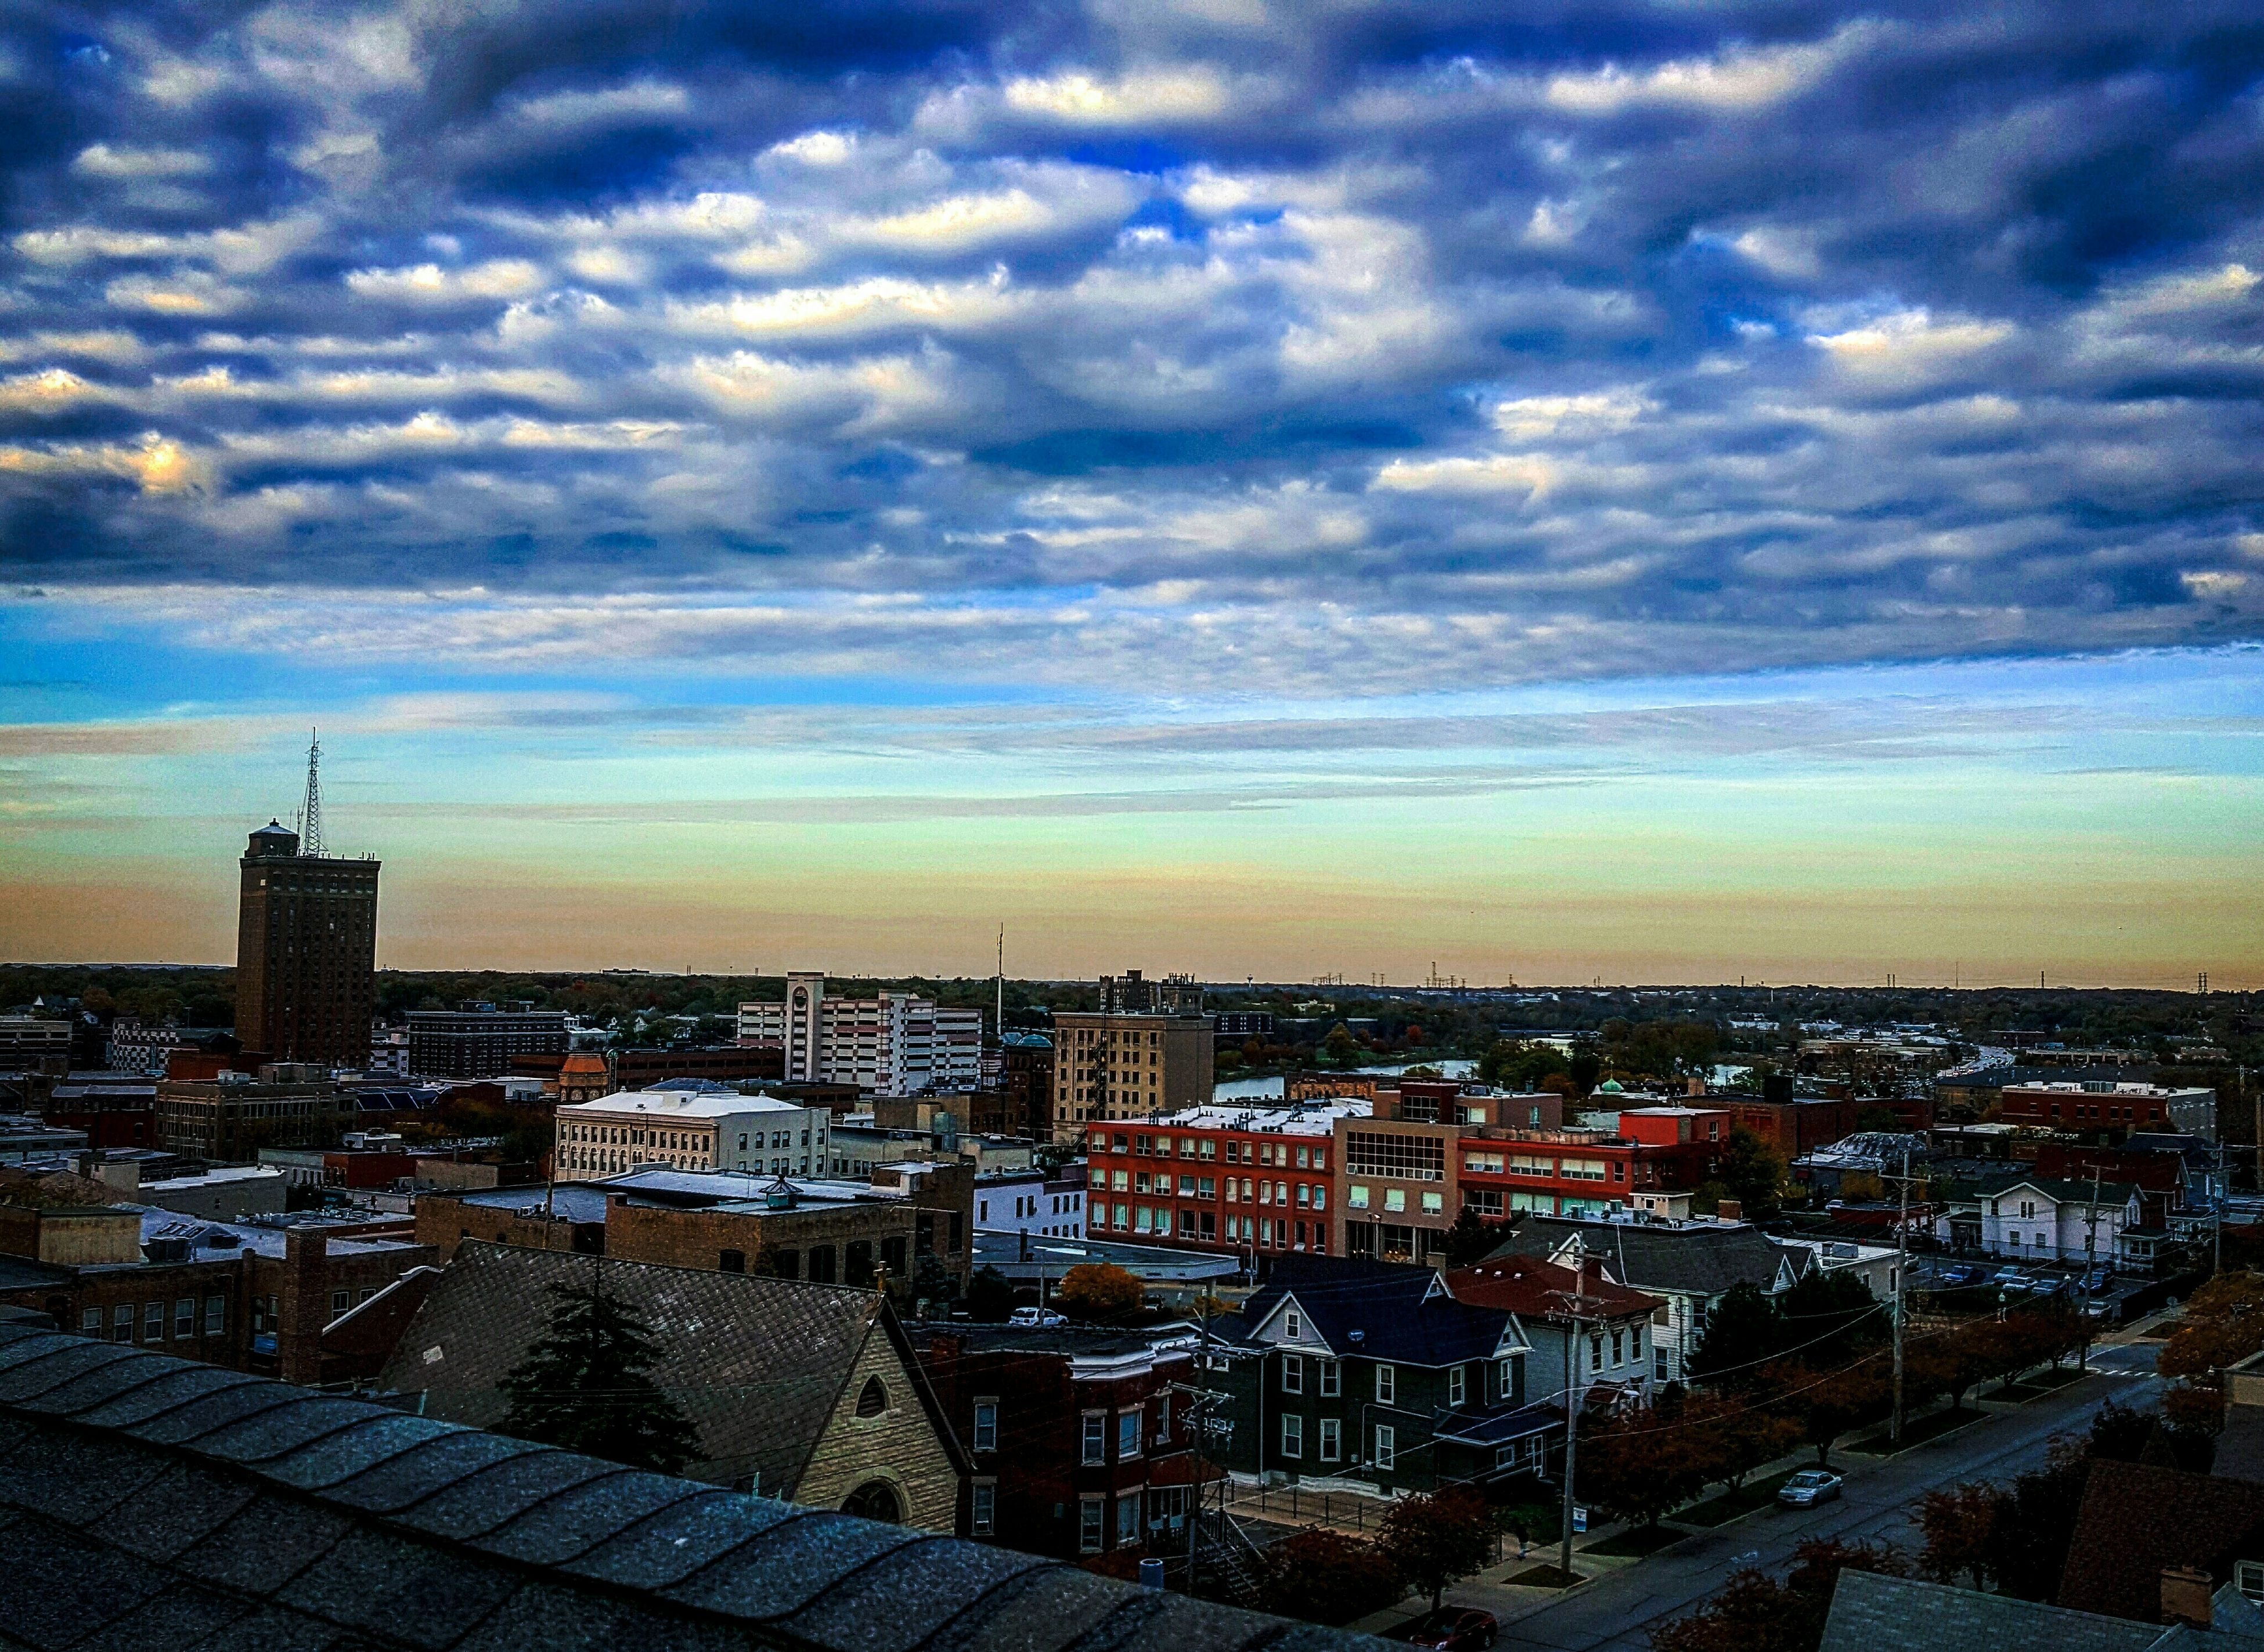 building exterior, architecture, sky, built structure, cityscape, city, cloud - sky, cloudy, sunset, high angle view, residential district, cloud, residential building, water, crowded, tower, city life, residential structure, weather, dusk